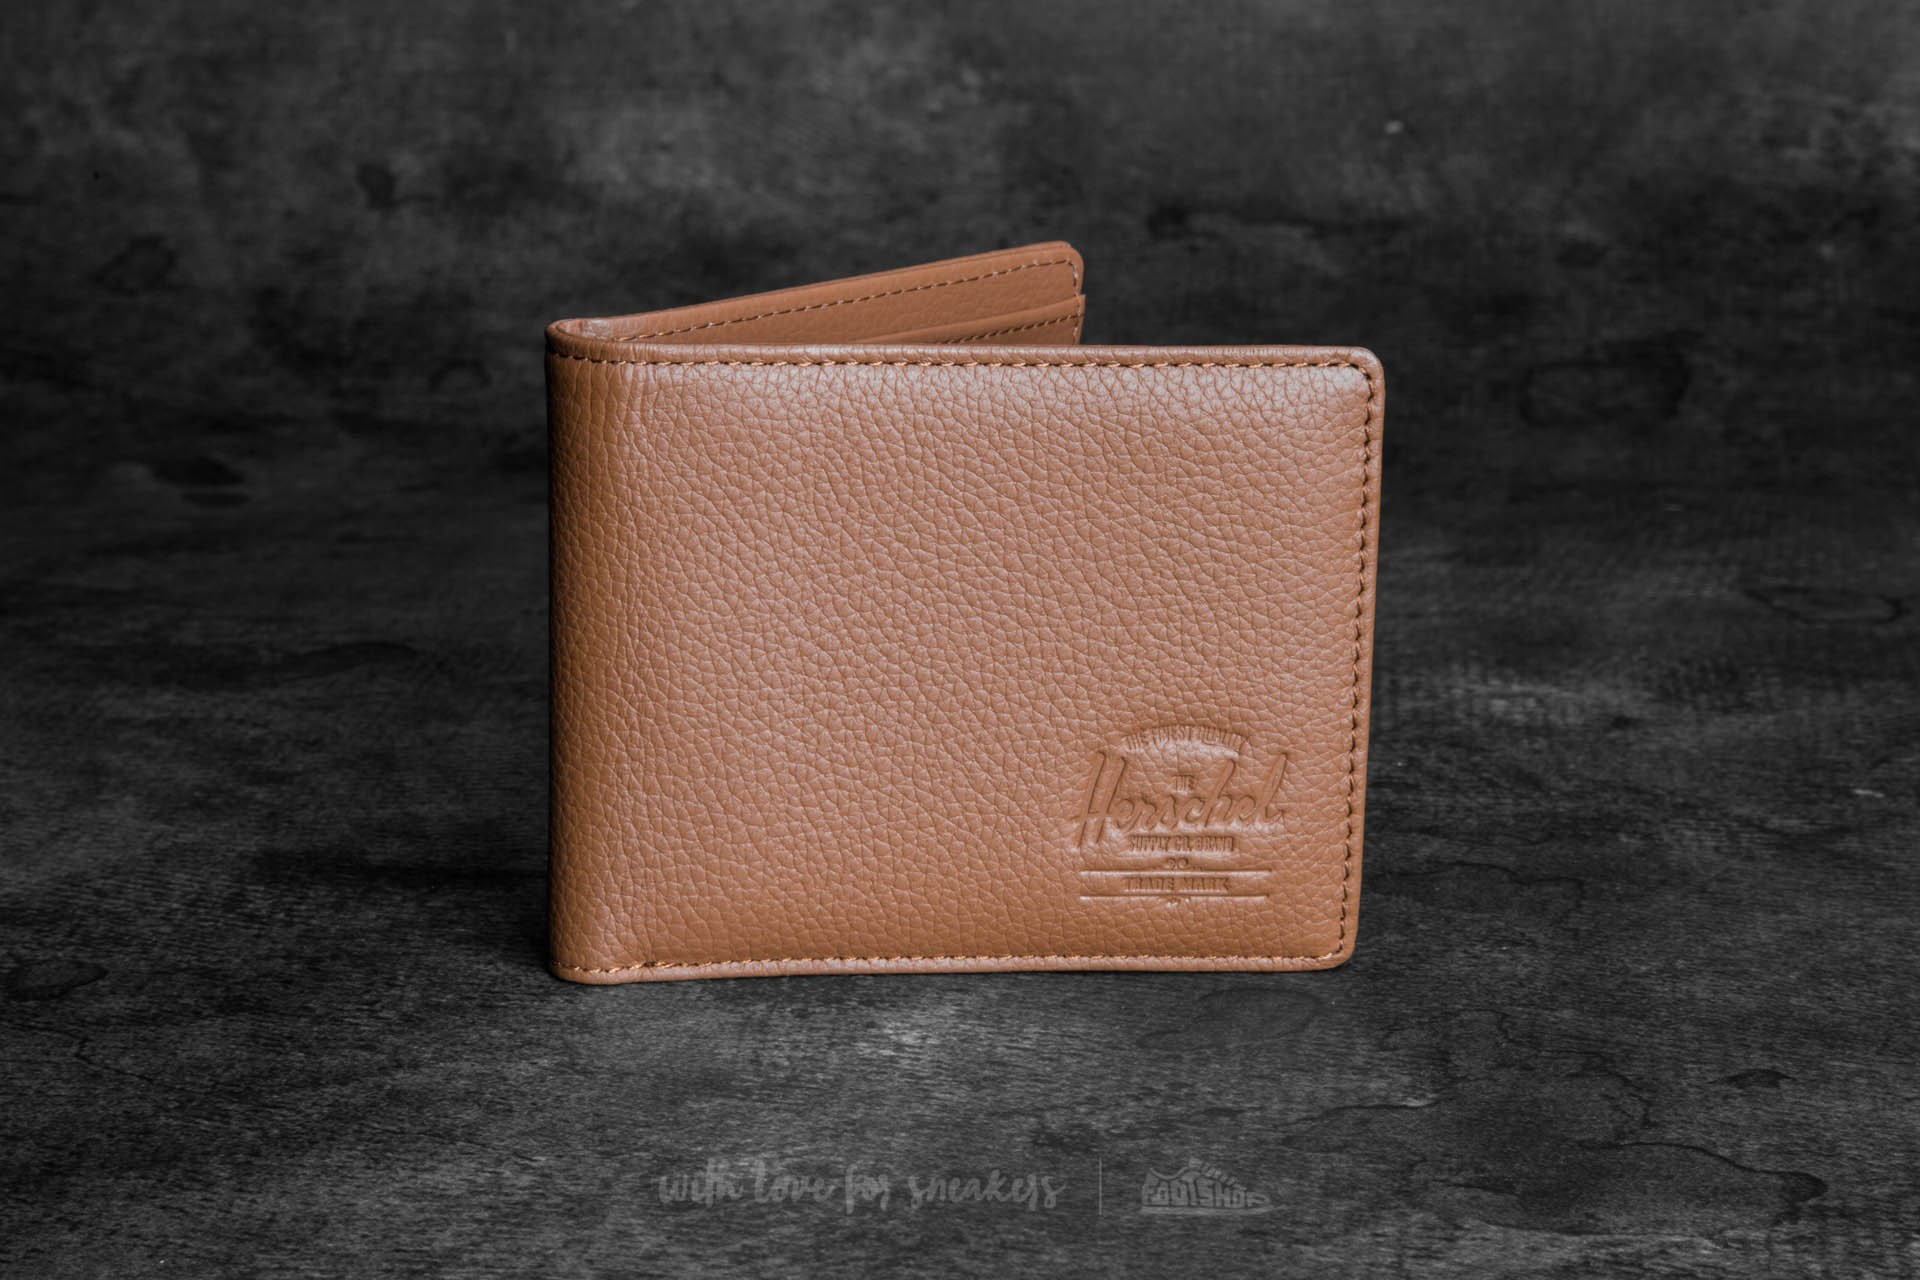 Herschel Supply Co. Hank Leather Wallet Tan Pebbled Leather - 11188